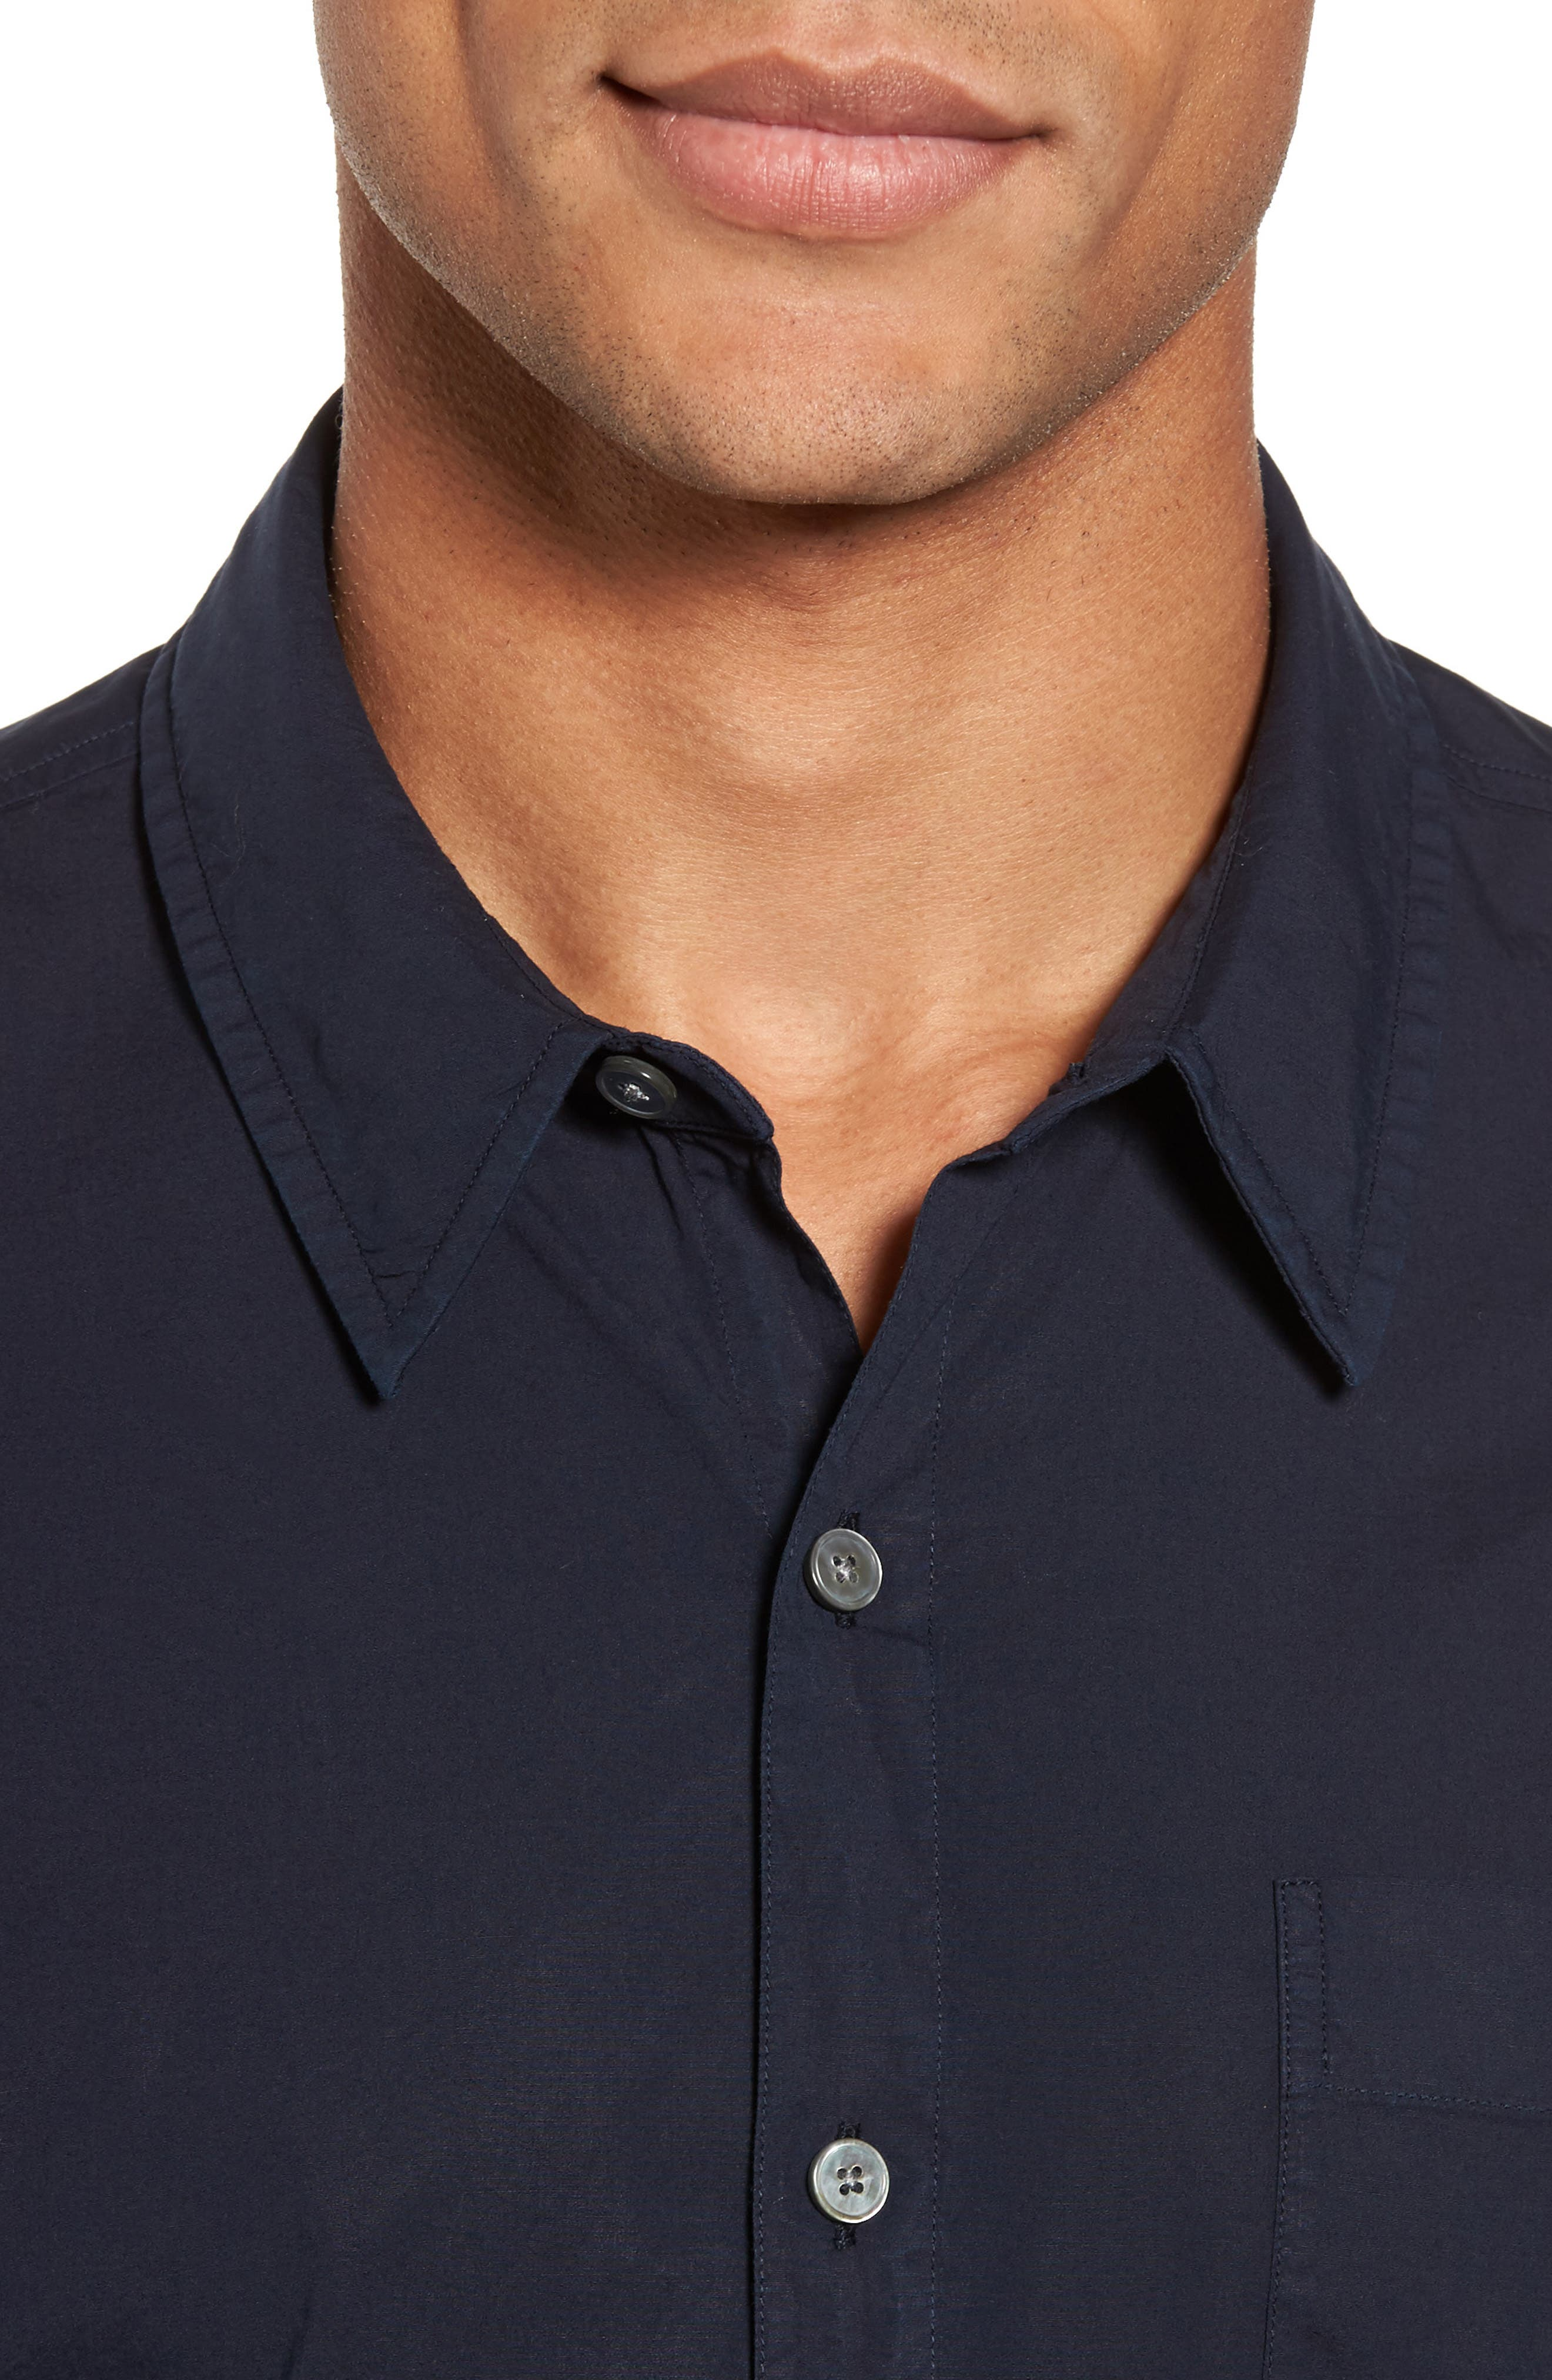 Relaxed Fit Sport Shirt,                             Alternate thumbnail 4, color,                             Blue Ink